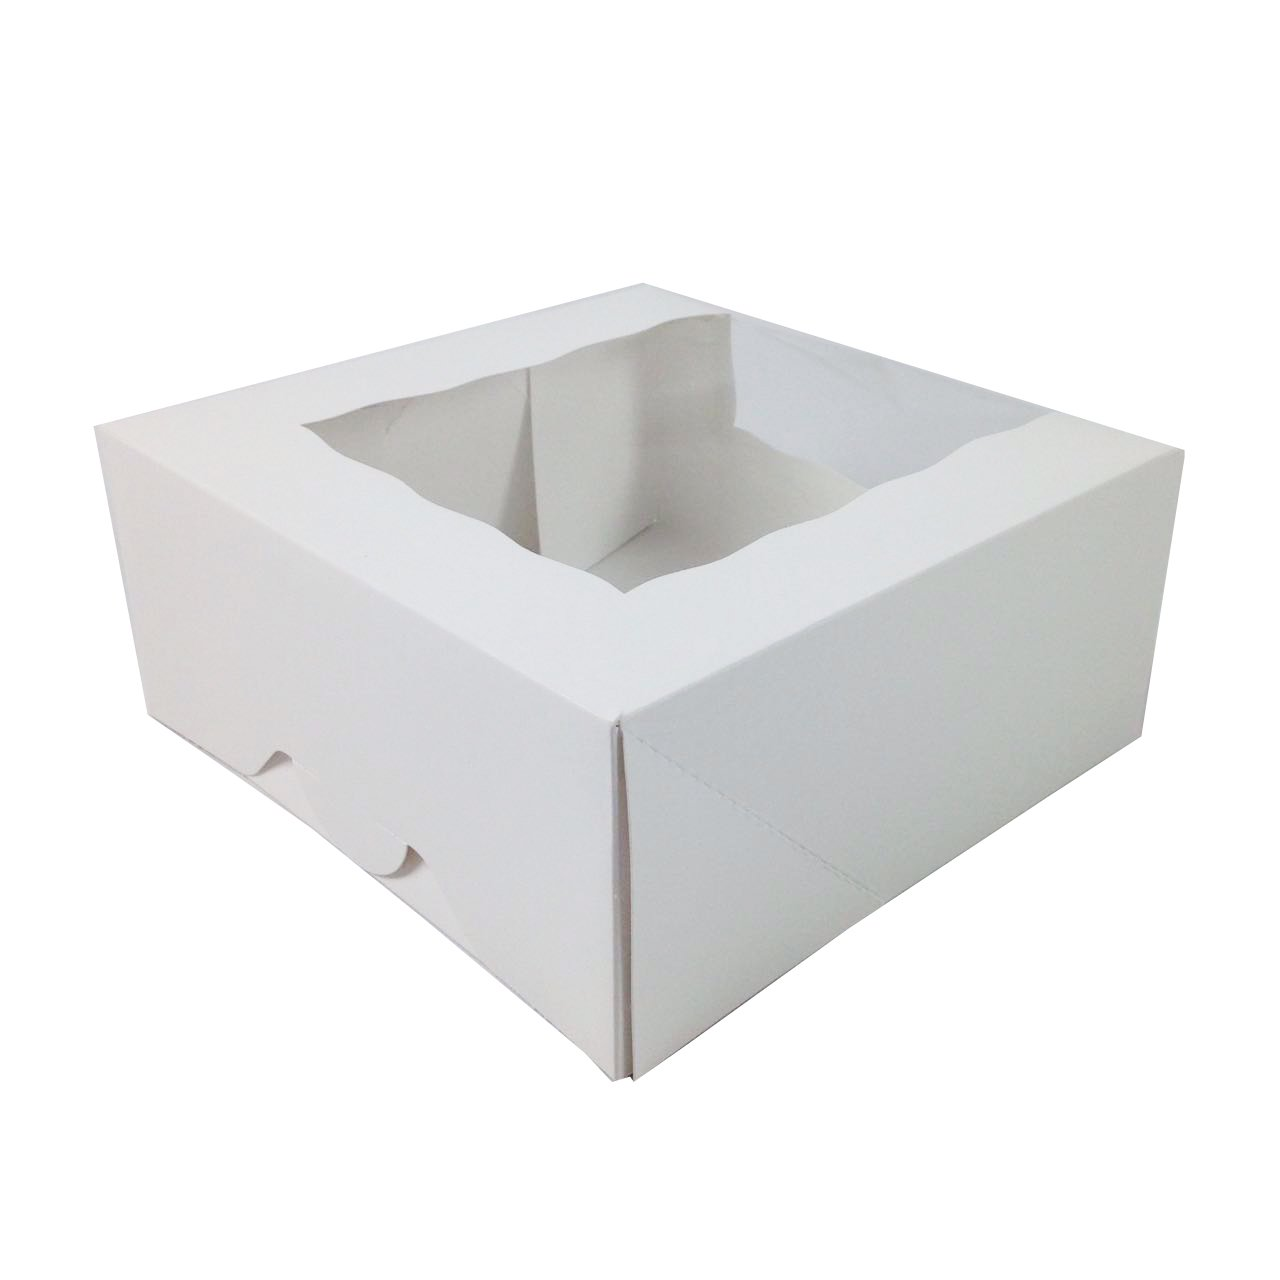 Black Cat Avenue 9'' x 9'' x 4'' White Pie Window Boxes For Cake Pastry Bakery Baked Goods Boxes, 5 Count